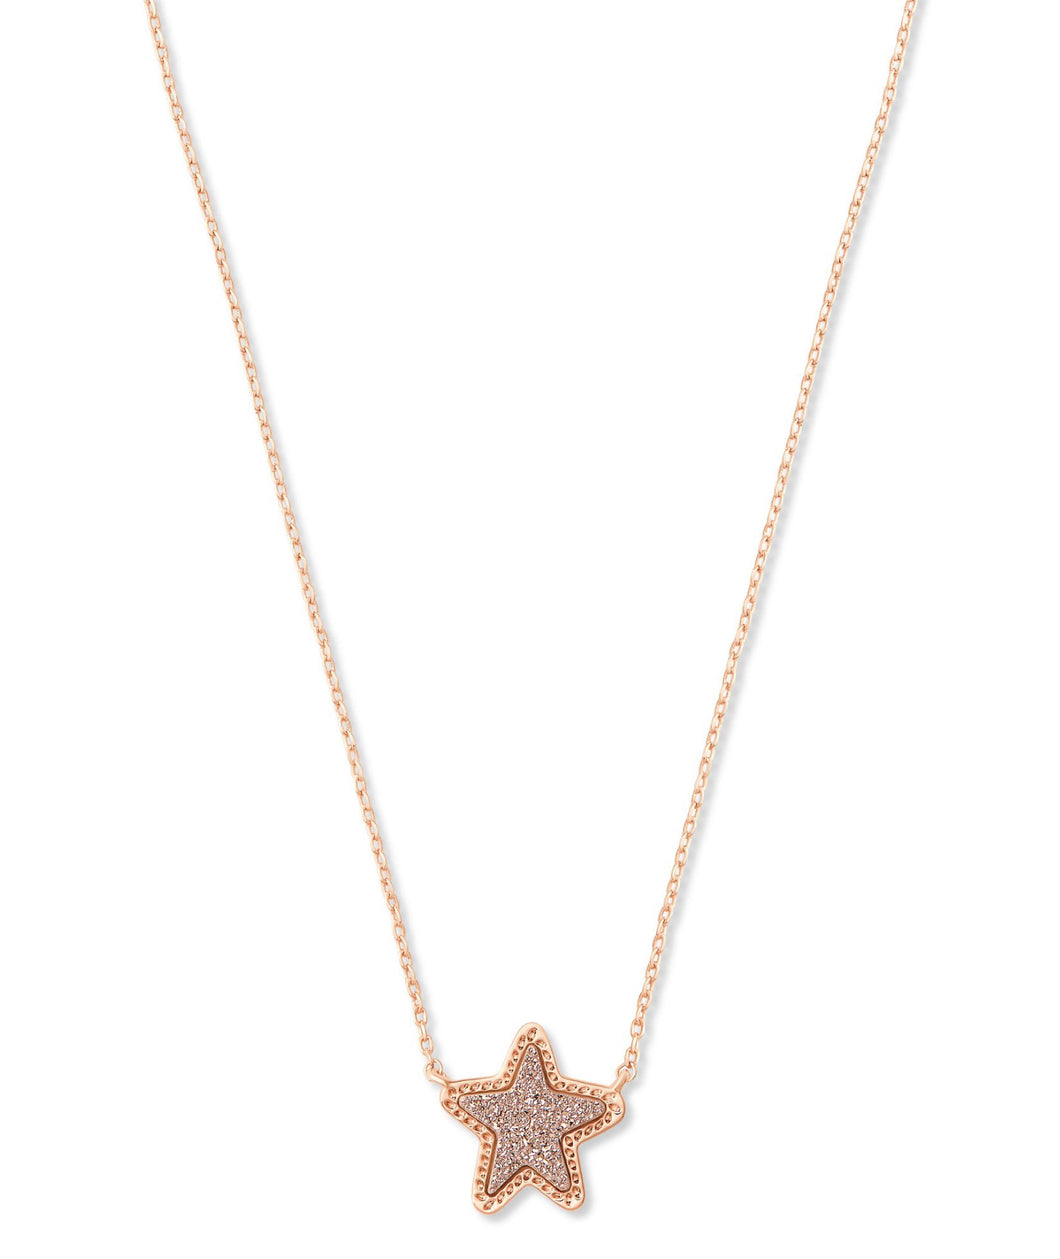 Kendra Scott: Jae Star Pendant Necklace - Rose Gold Drusy